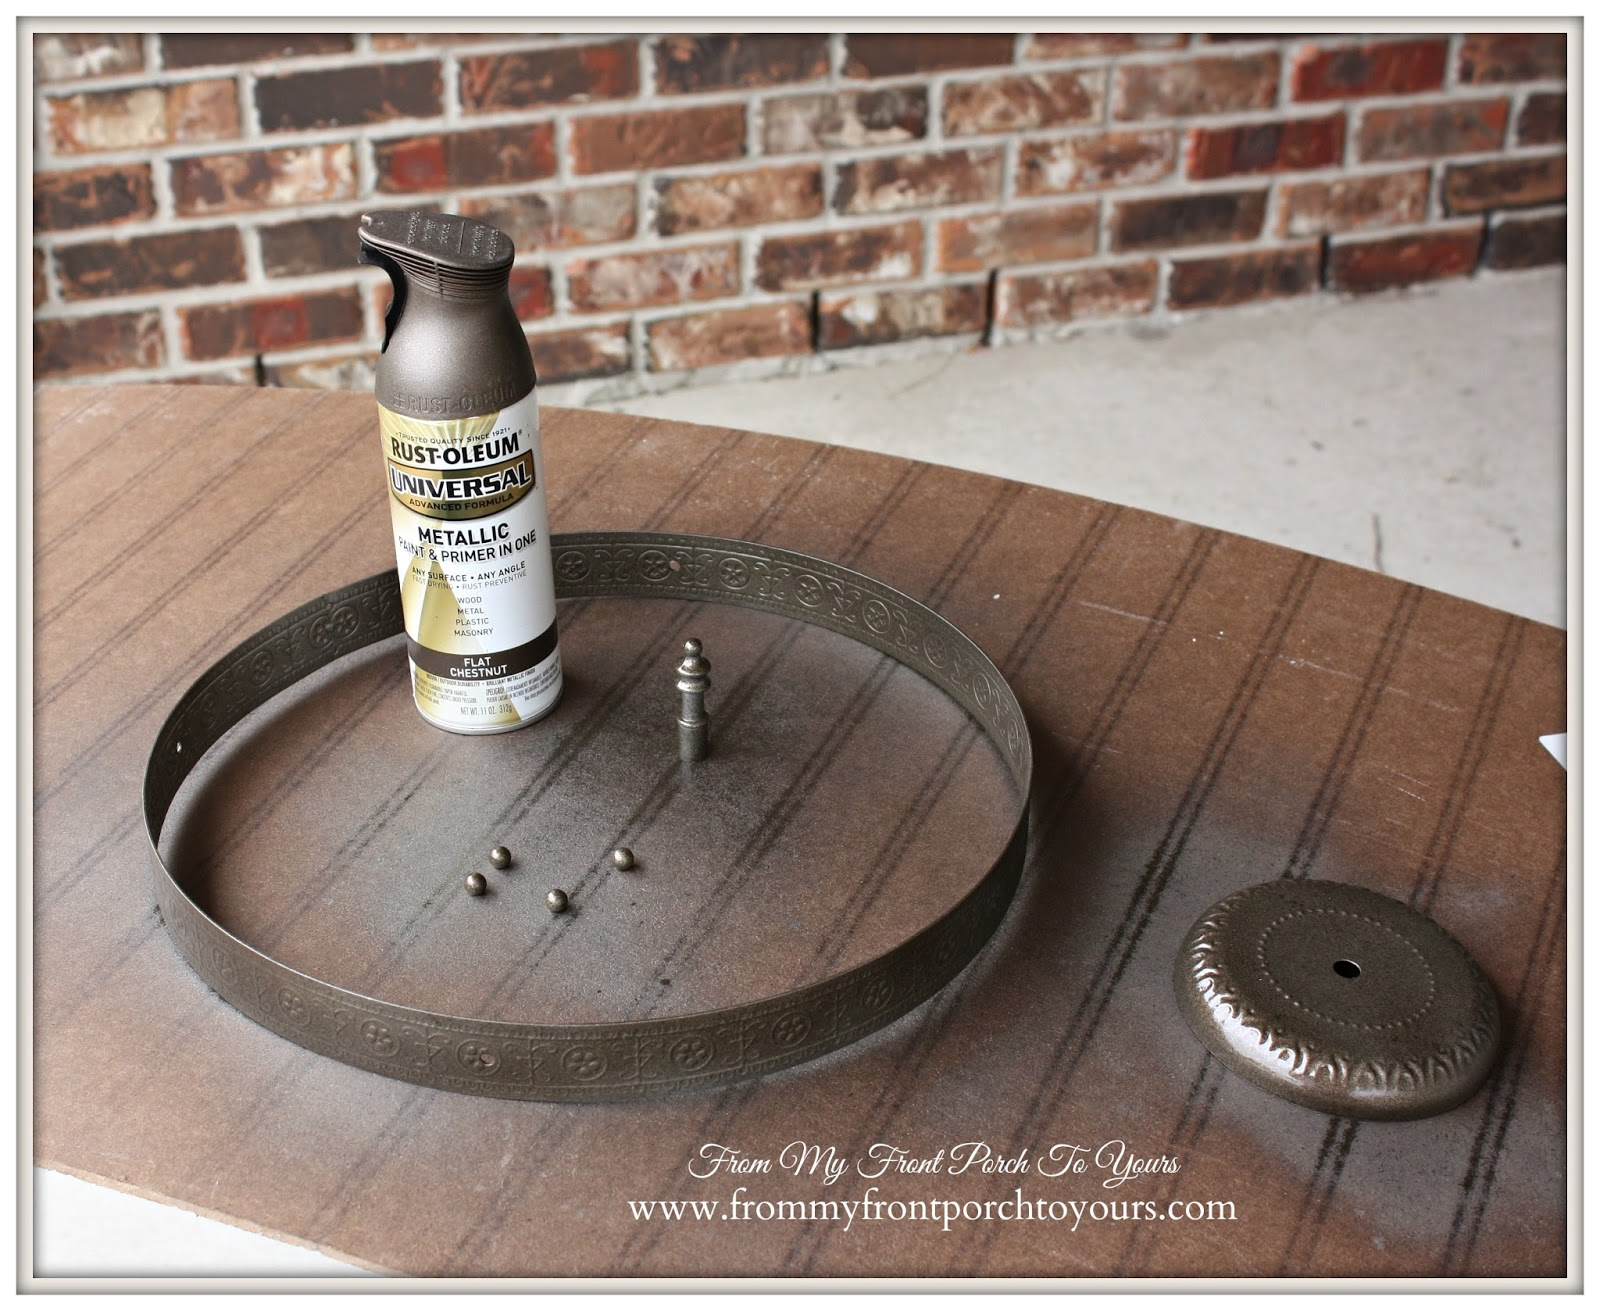 Industrial Farmhouse Light-Spray Painting Light Fixture- From My Front Porch To Yours